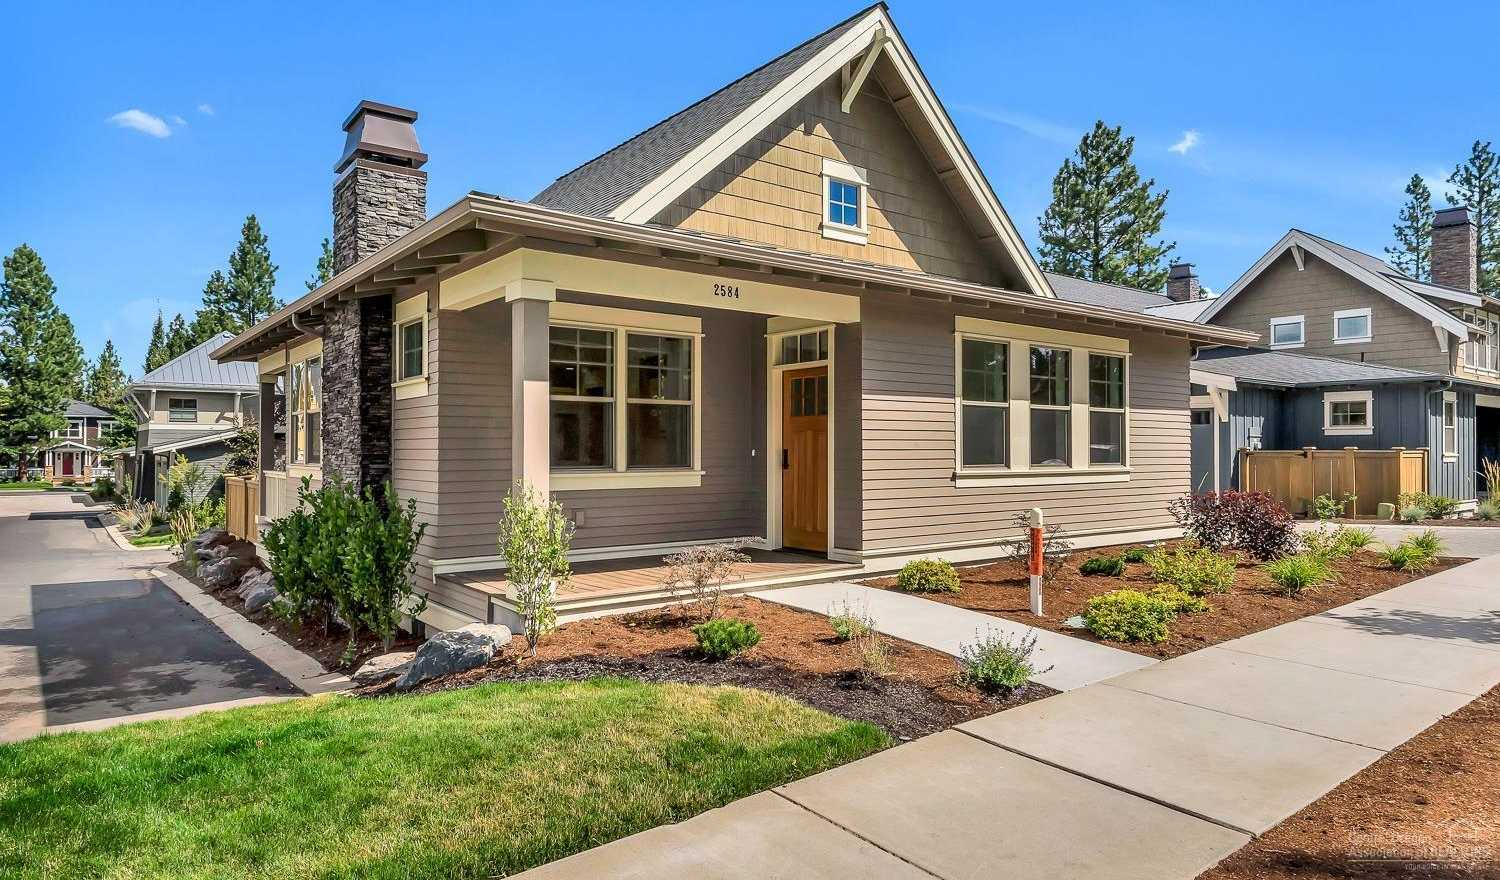 $509,000 - 2Br/3Ba -  for Sale in Bungalows At Nwx, Bend